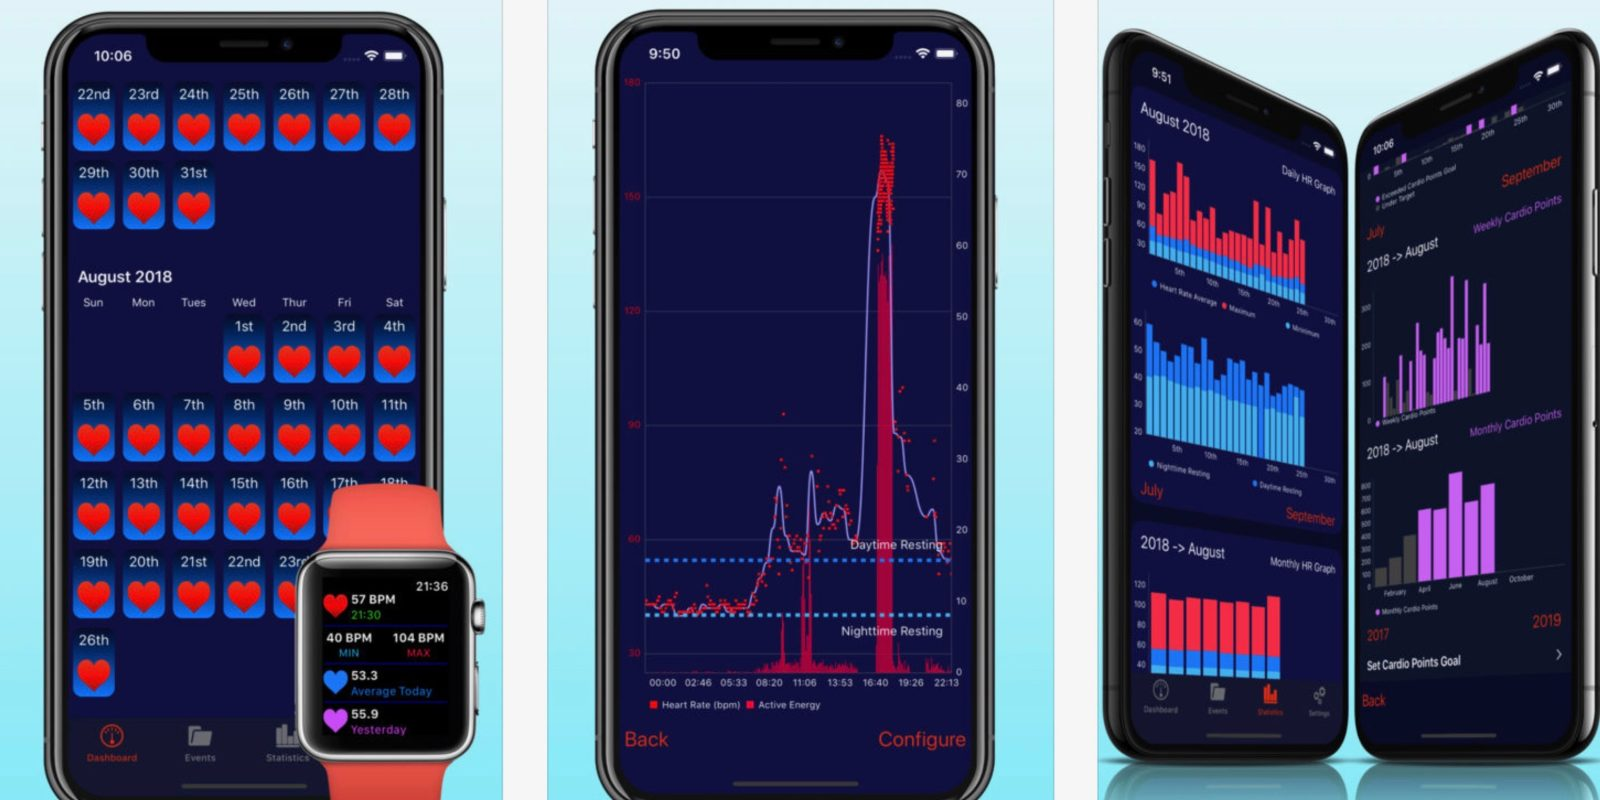 Heart Analyzer for Apple Watch lets you visualize heart rate during exercise, sleep, more